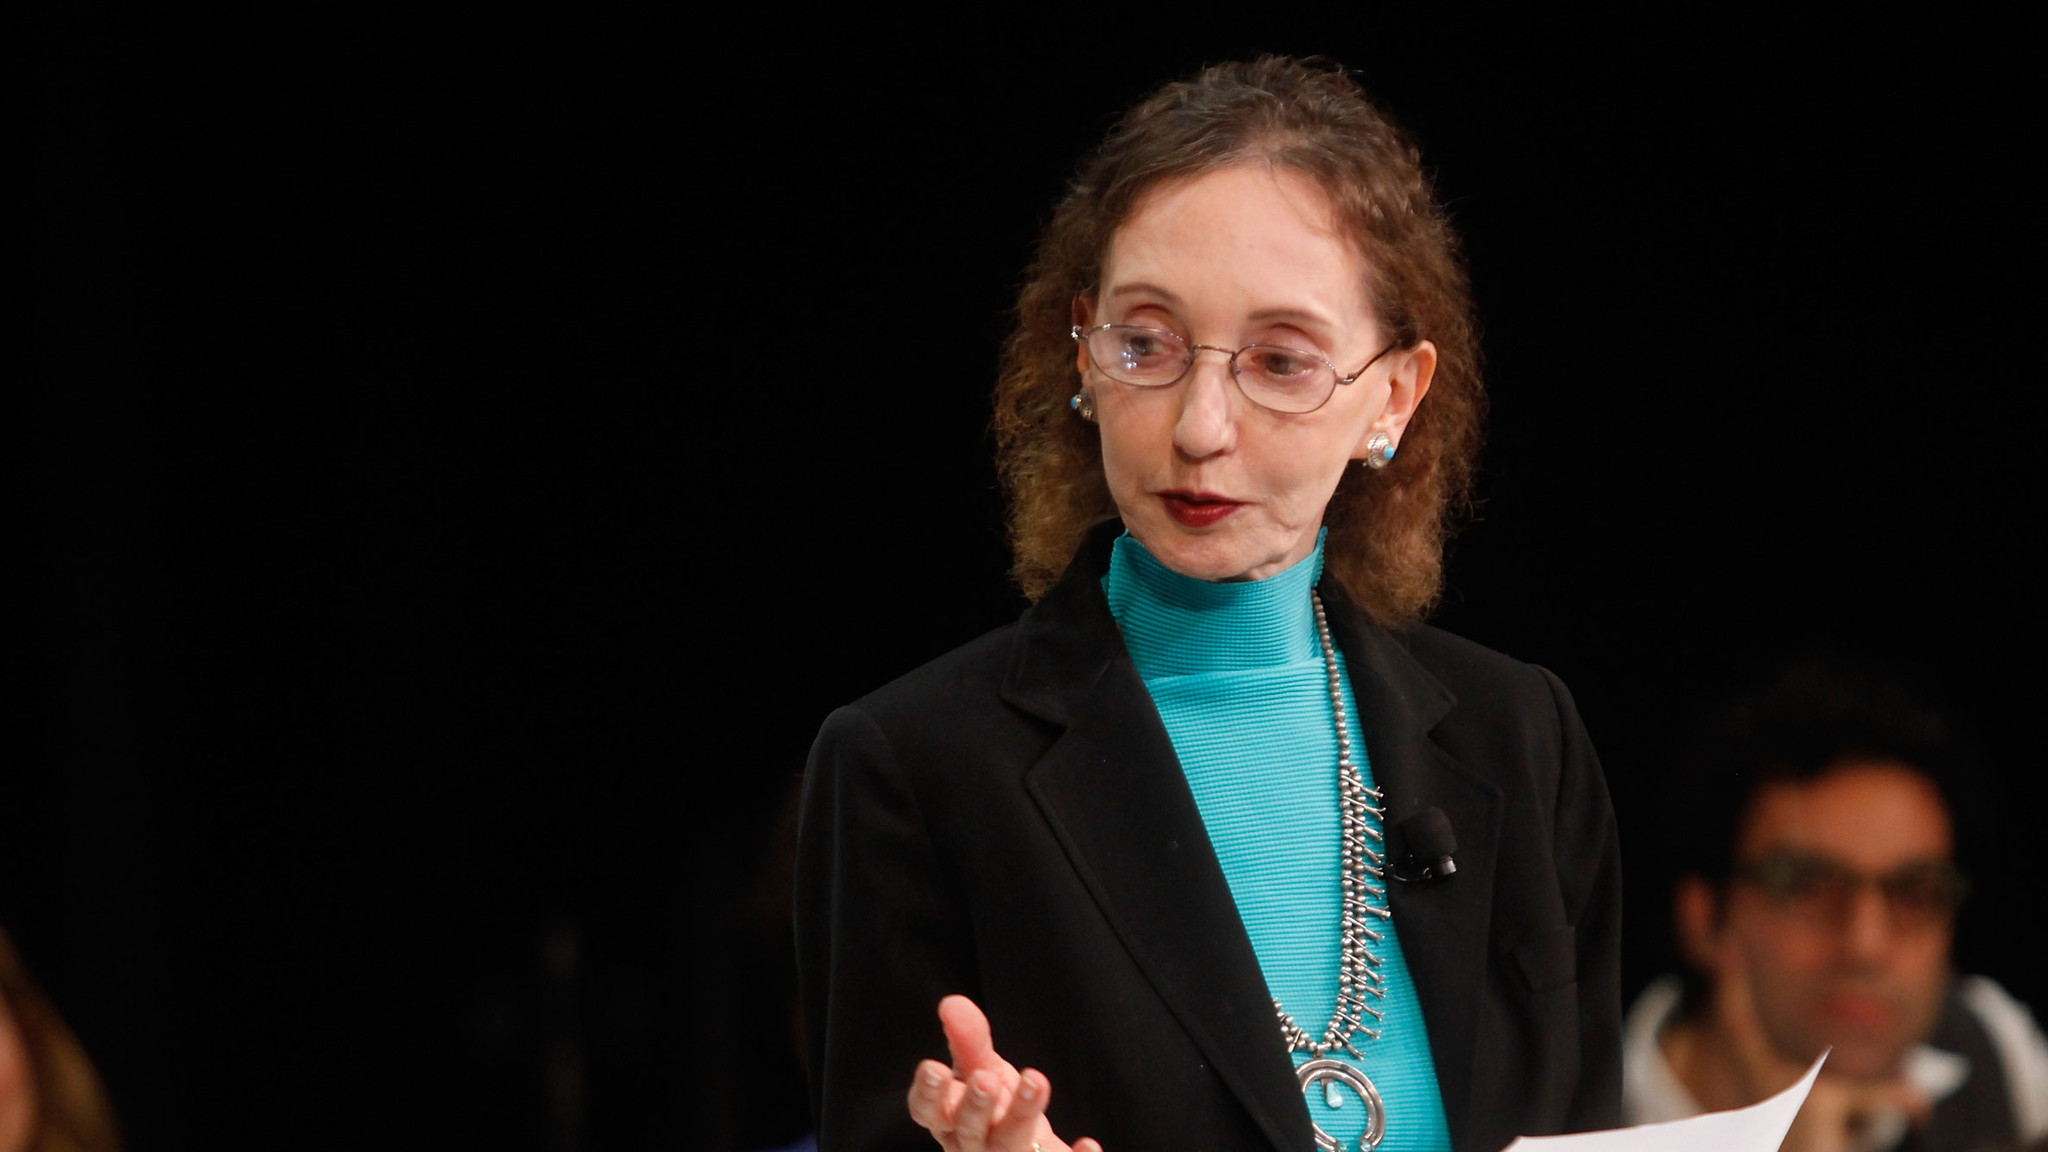 decision making and joyce carol oates Joyce carol oates tweeted that joyce carol oates, we in mississippi do read joyce carol oates tweeted that i know she was commenting on the current flap over the biloxi school district's mind-numbing decision to yank harper lee's classic novel to kill a.